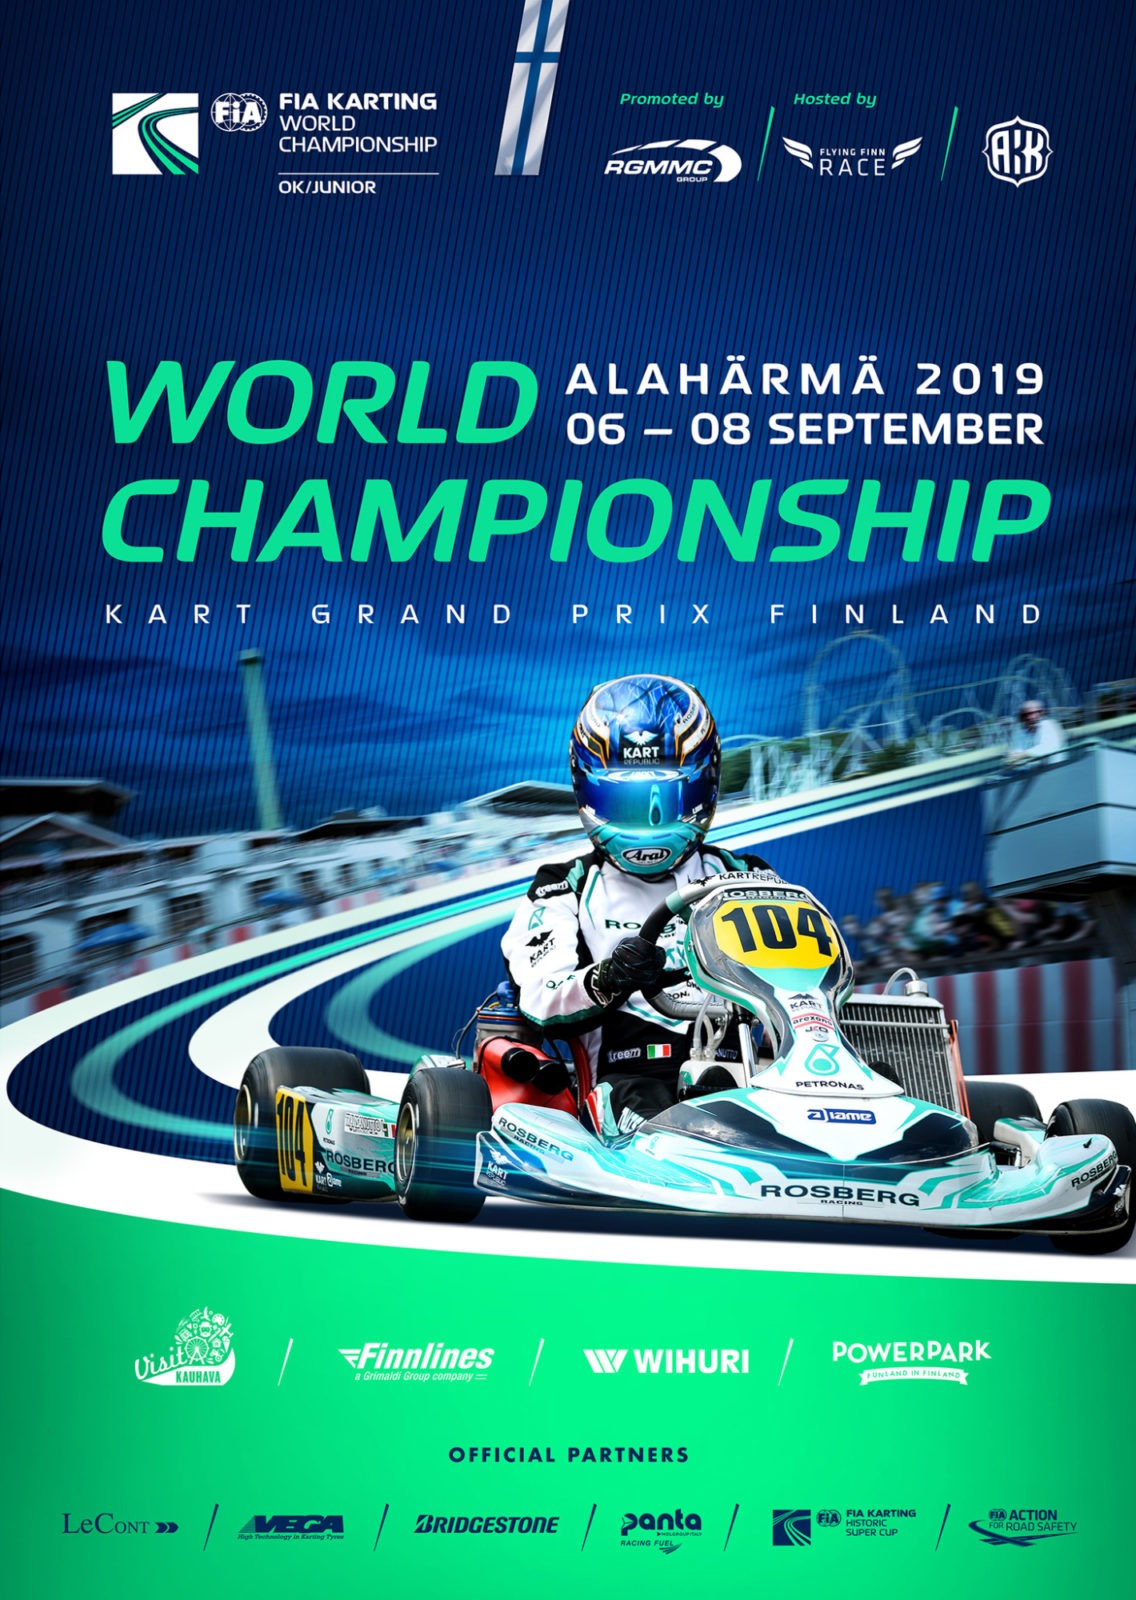 Head To Finland For The 2019 World Championship Kart360